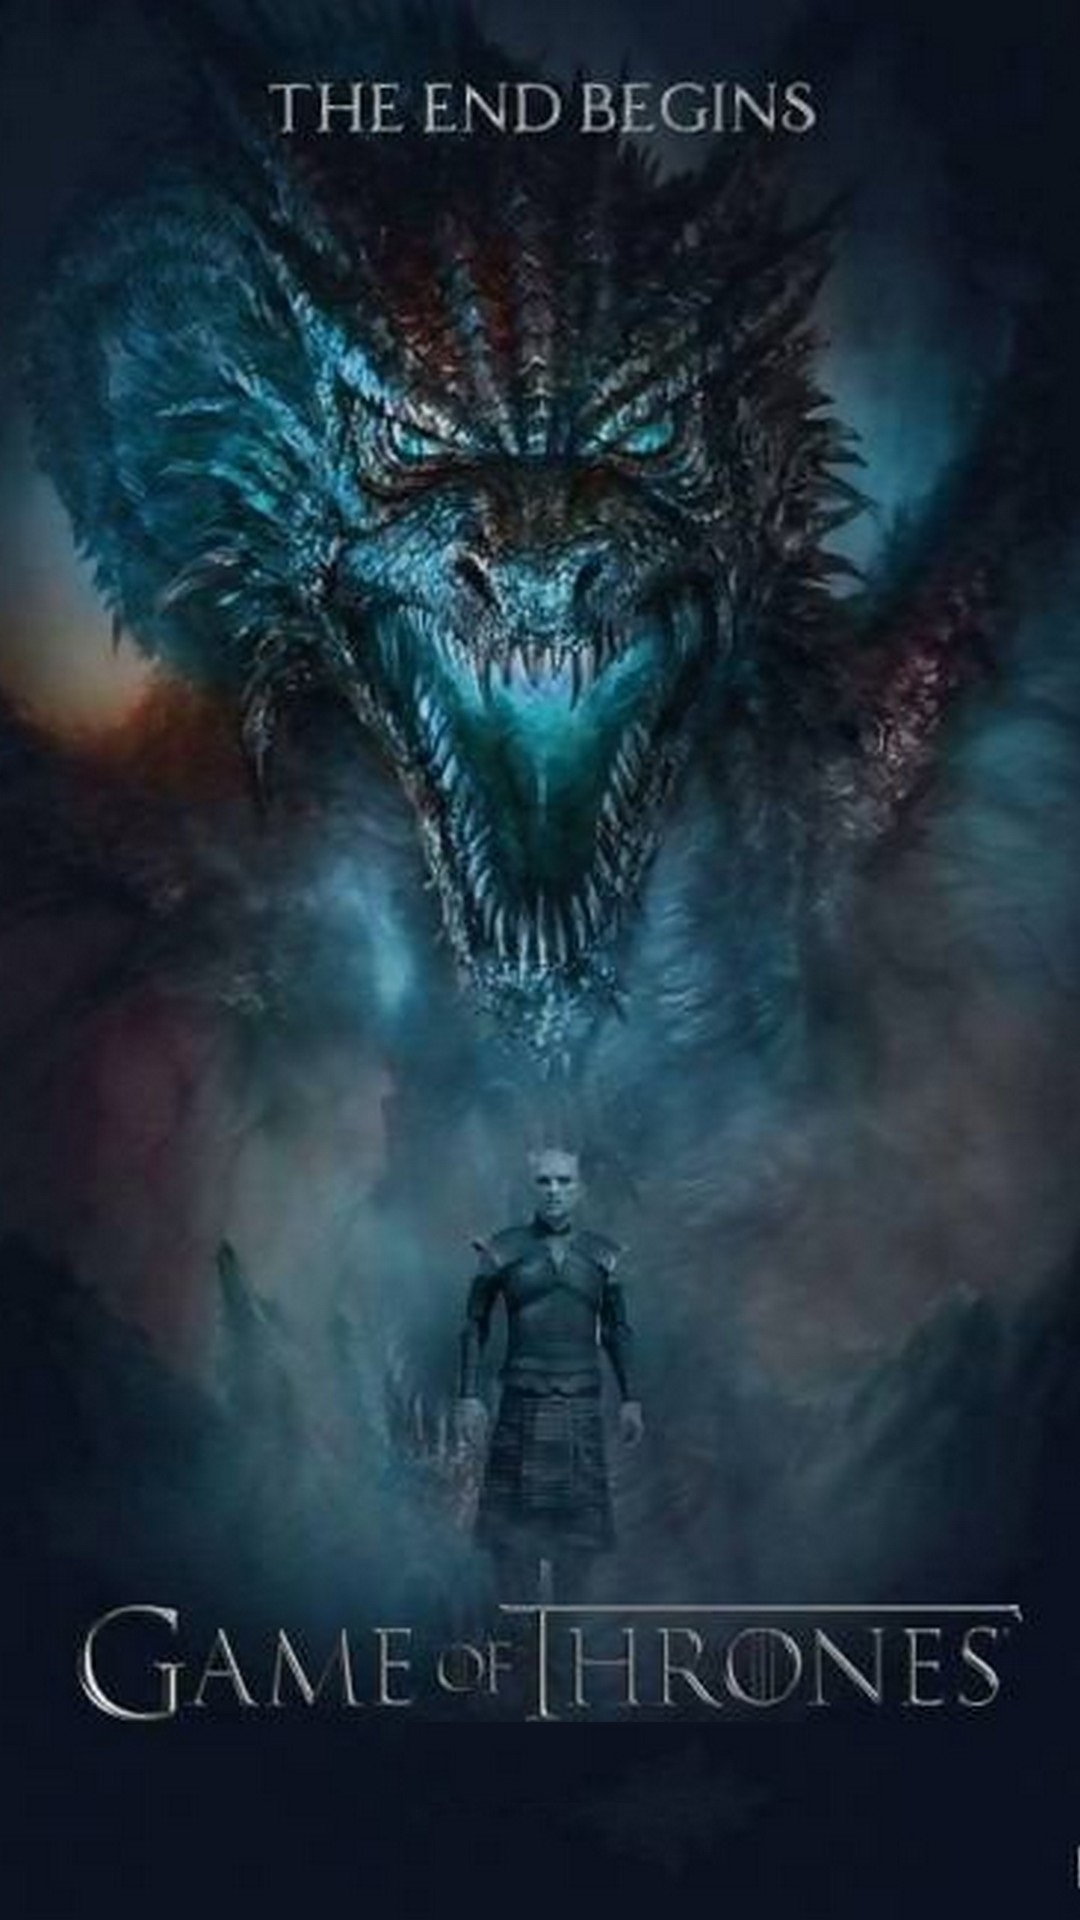 Wallpaper Iphone Game Of Thrones Dragons With High-resolution - High Resolution Game Of Thrones Dragon - HD Wallpaper